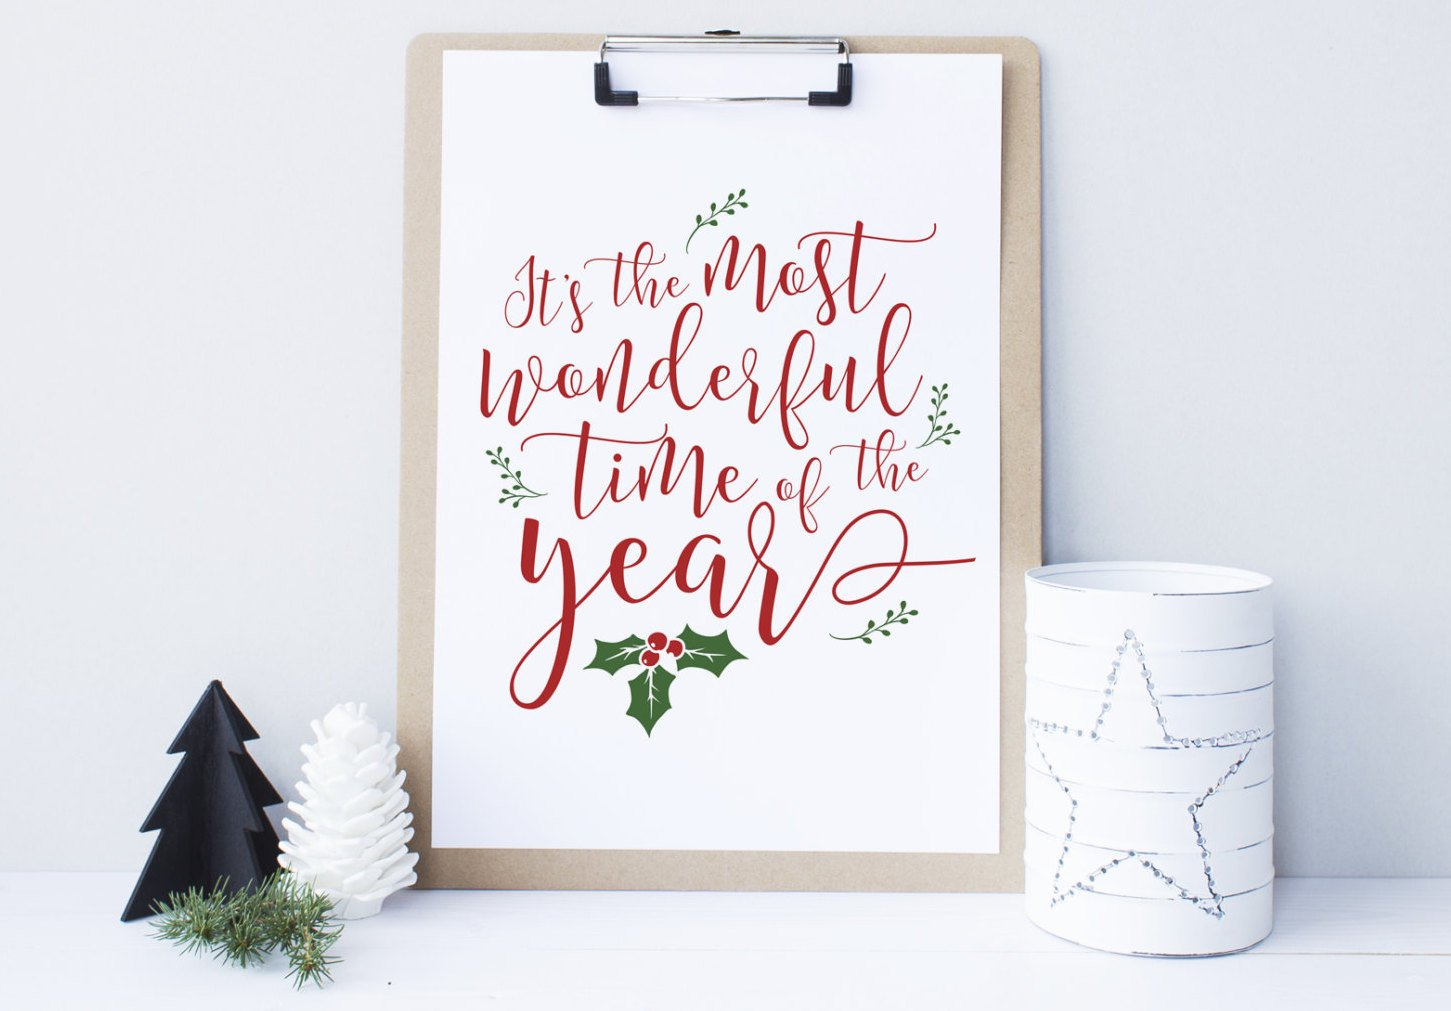 t's the most wonderful time of the year Printable Christmas Decor